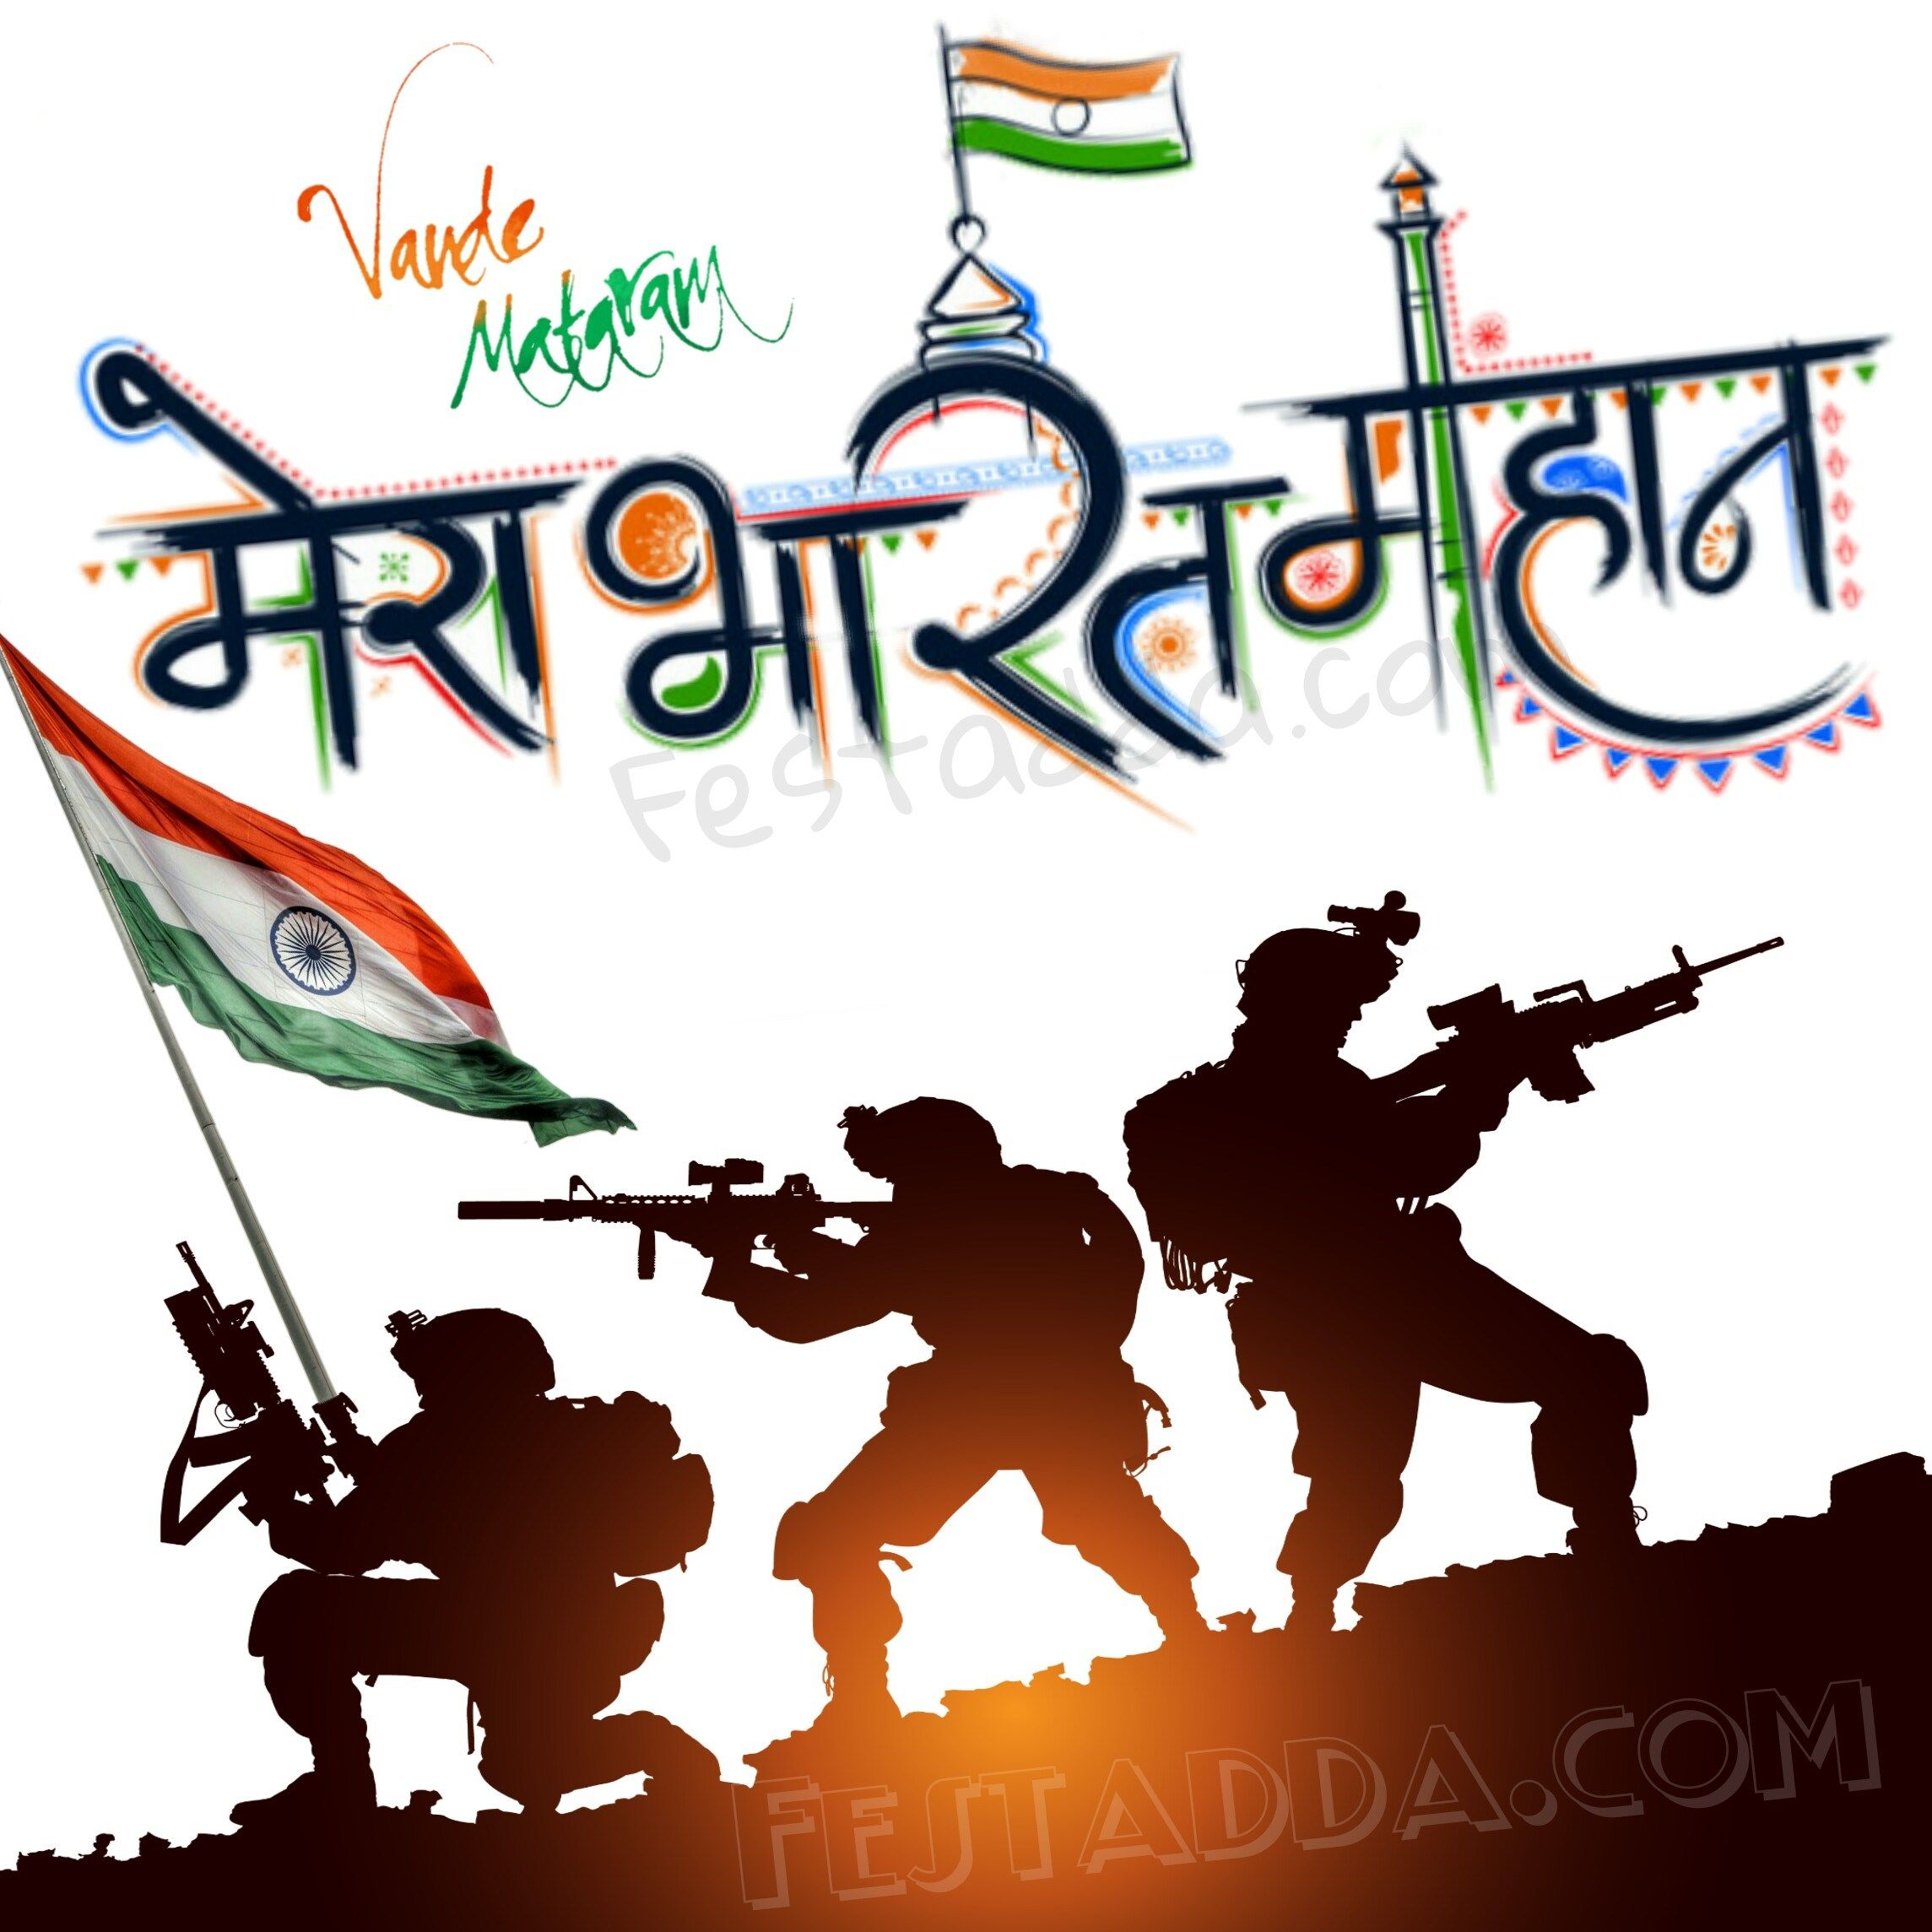 26th January Pics Images Photos Indian Army Wallpapers Army Images Indian Flag Wallpaper Happy republic day january 26 2021